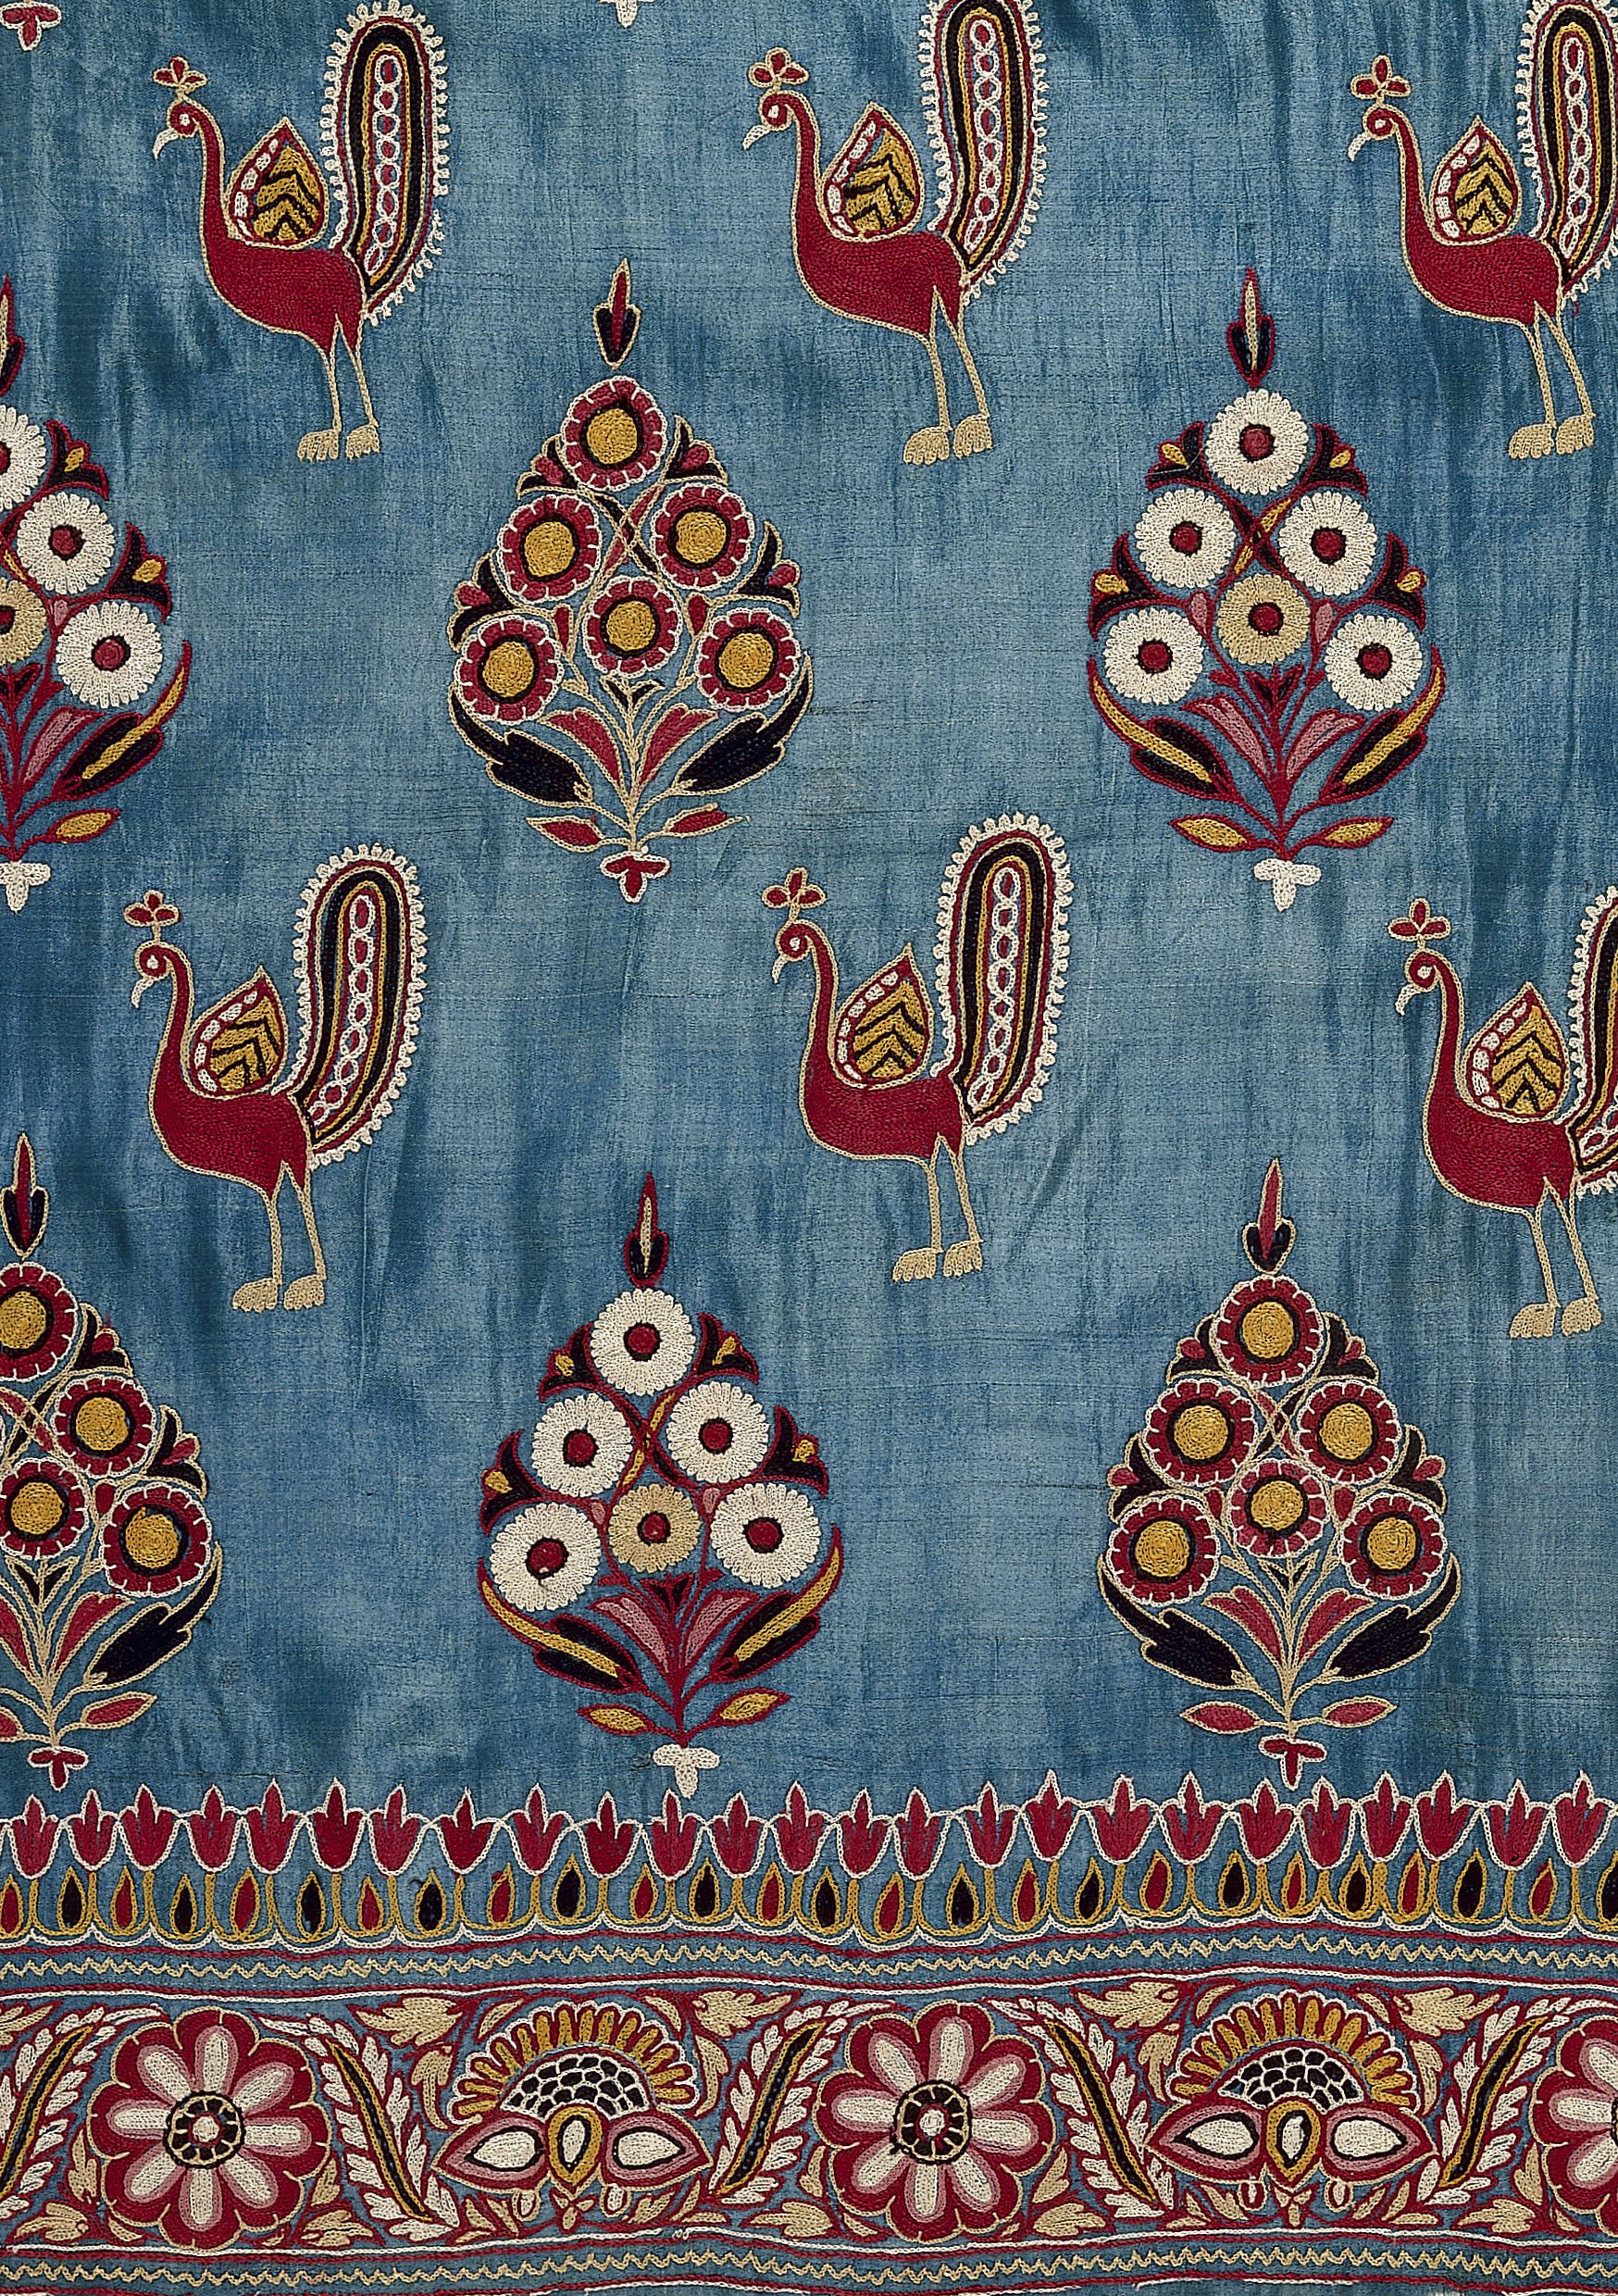 American Indian Fabric Patterns